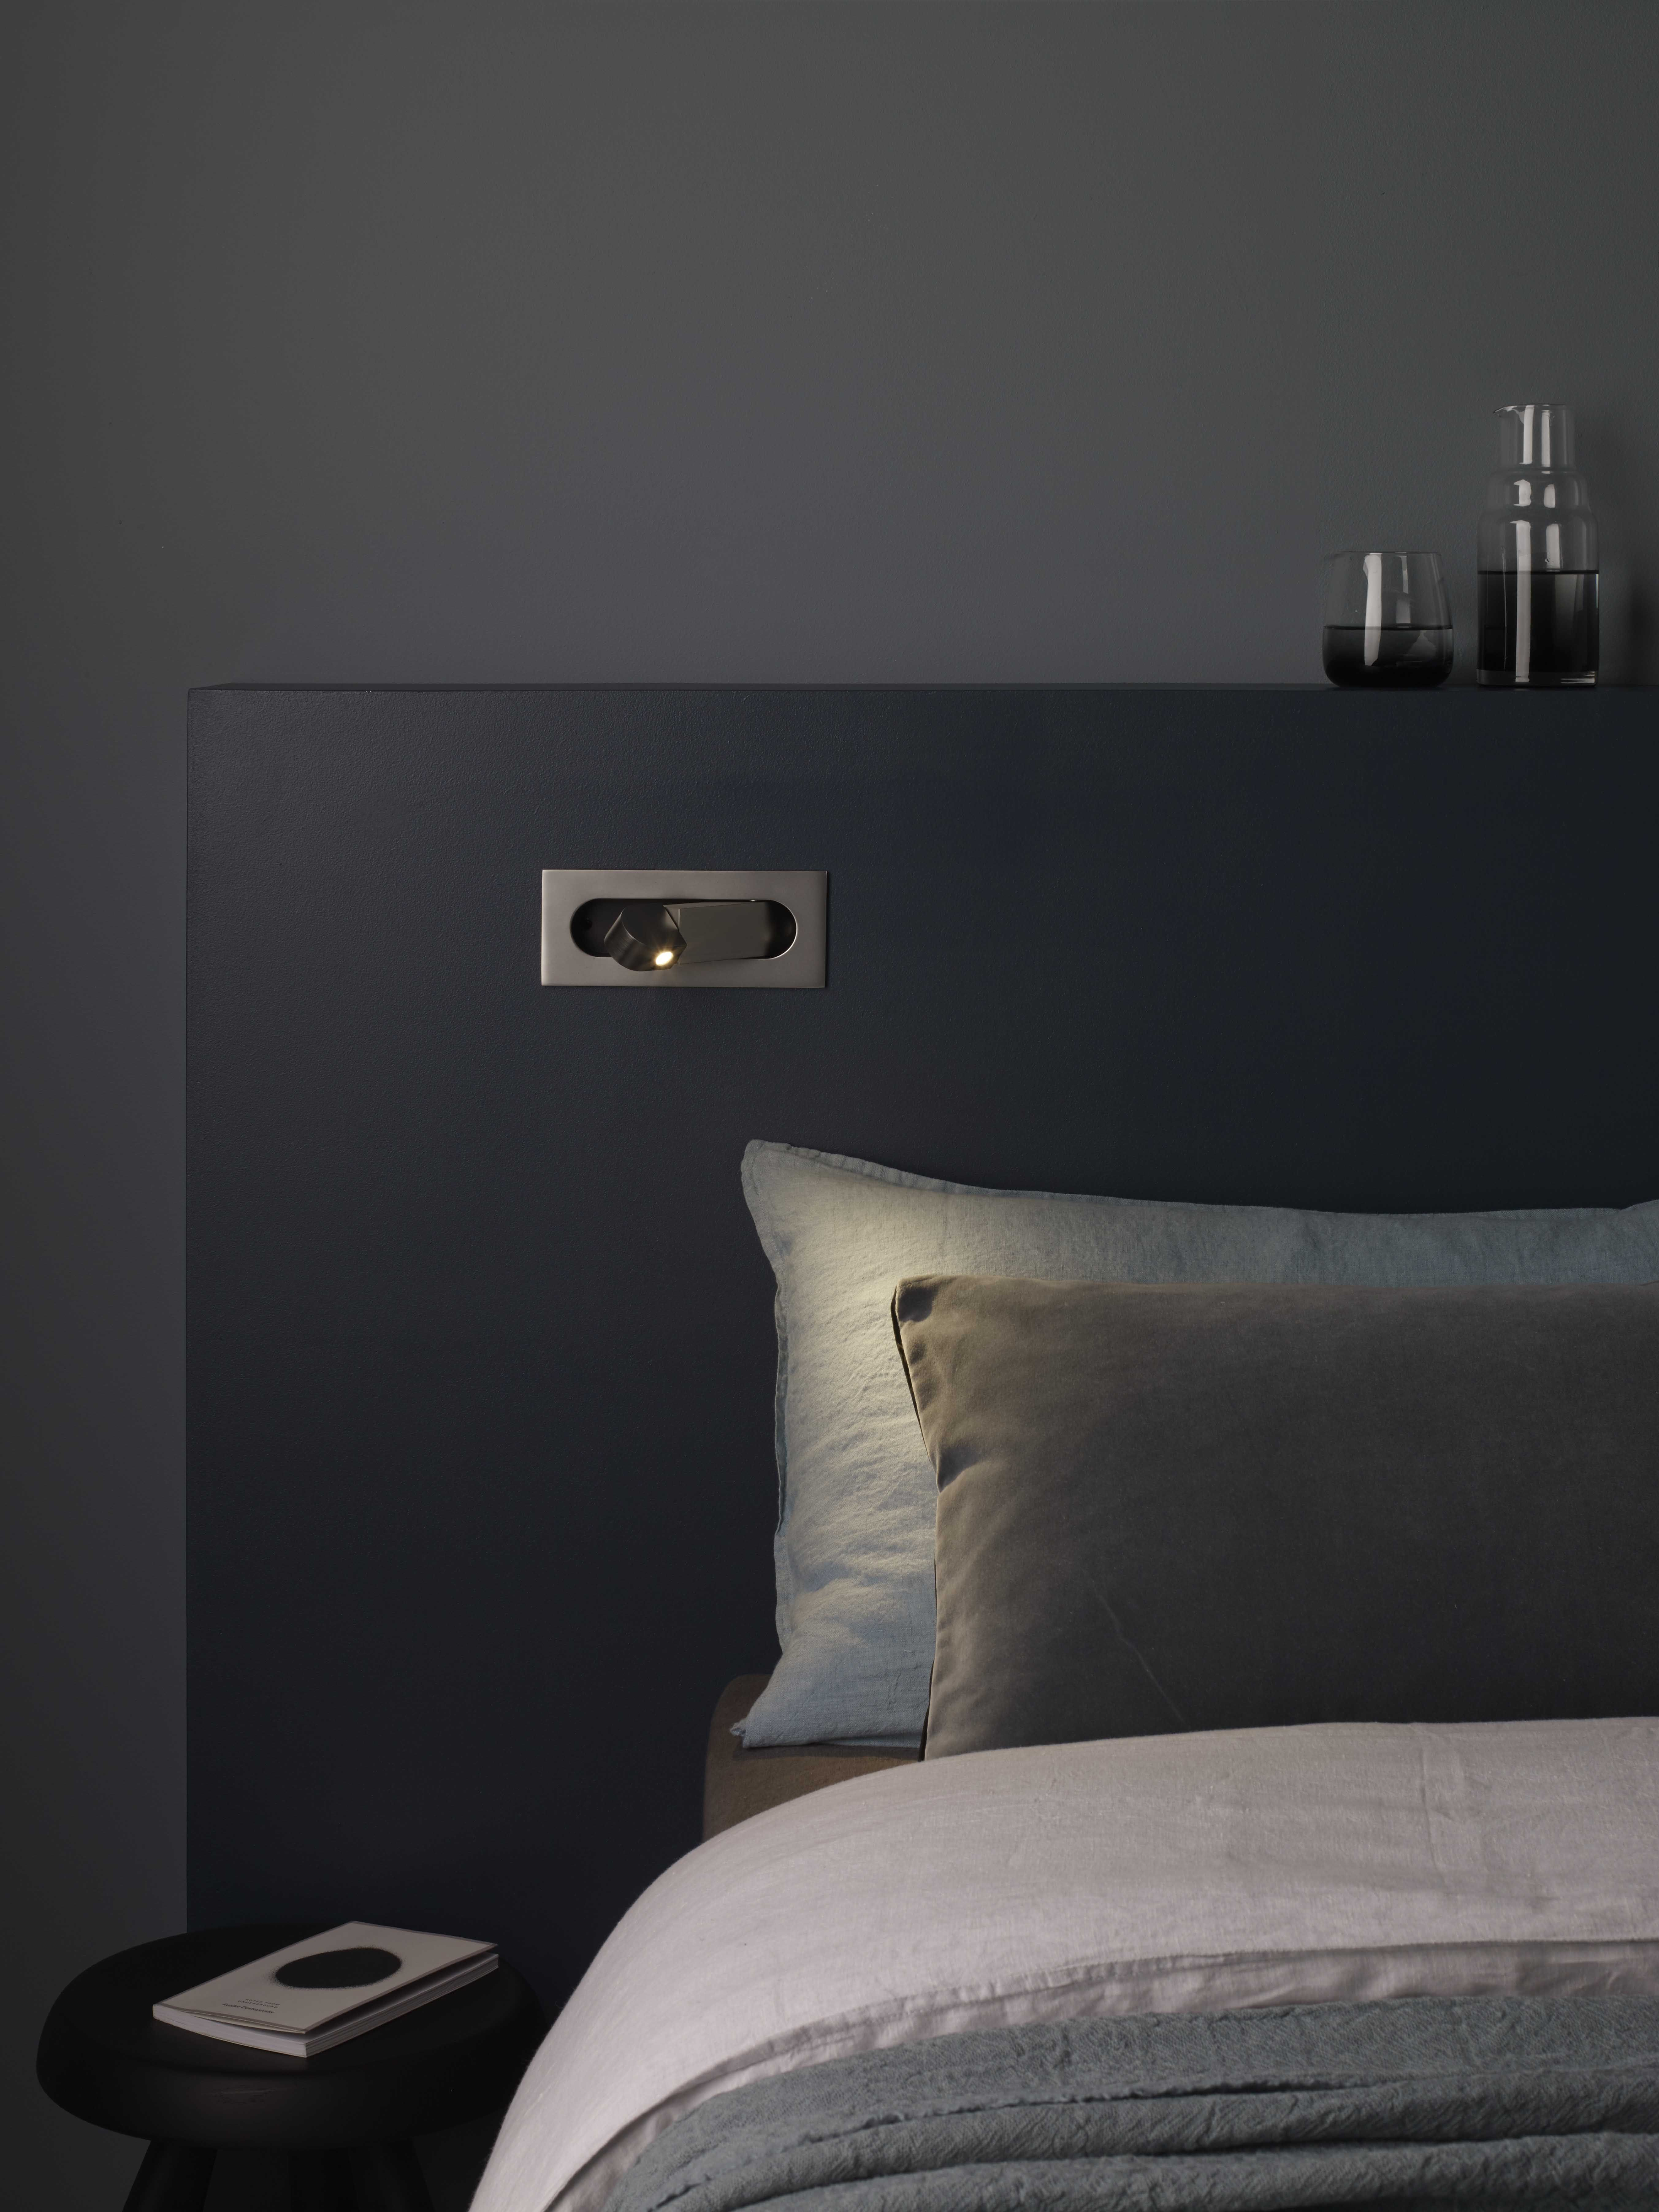 The Digit Interior Wall Reading Light By Astro Lighting Bedroom